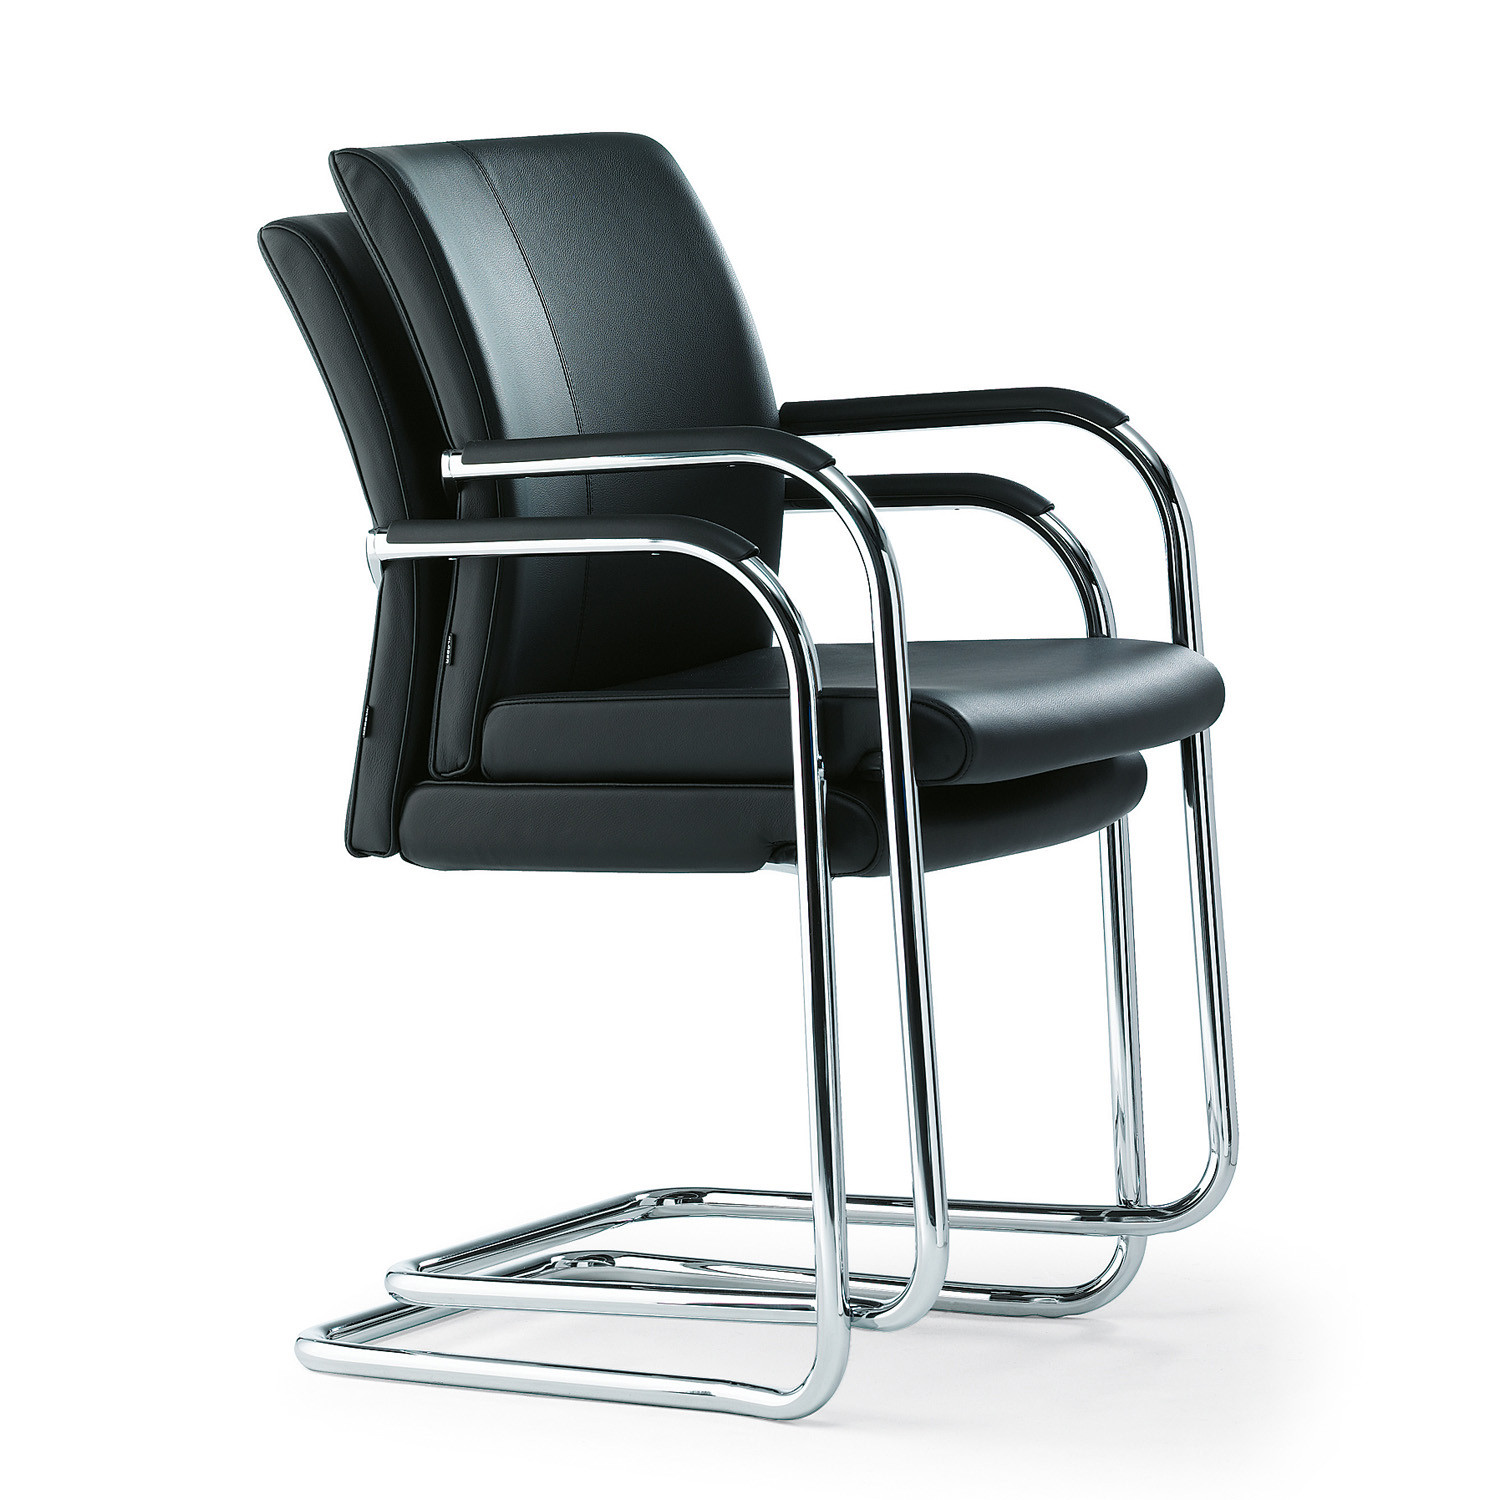 Cato Casa Stacking Chairs